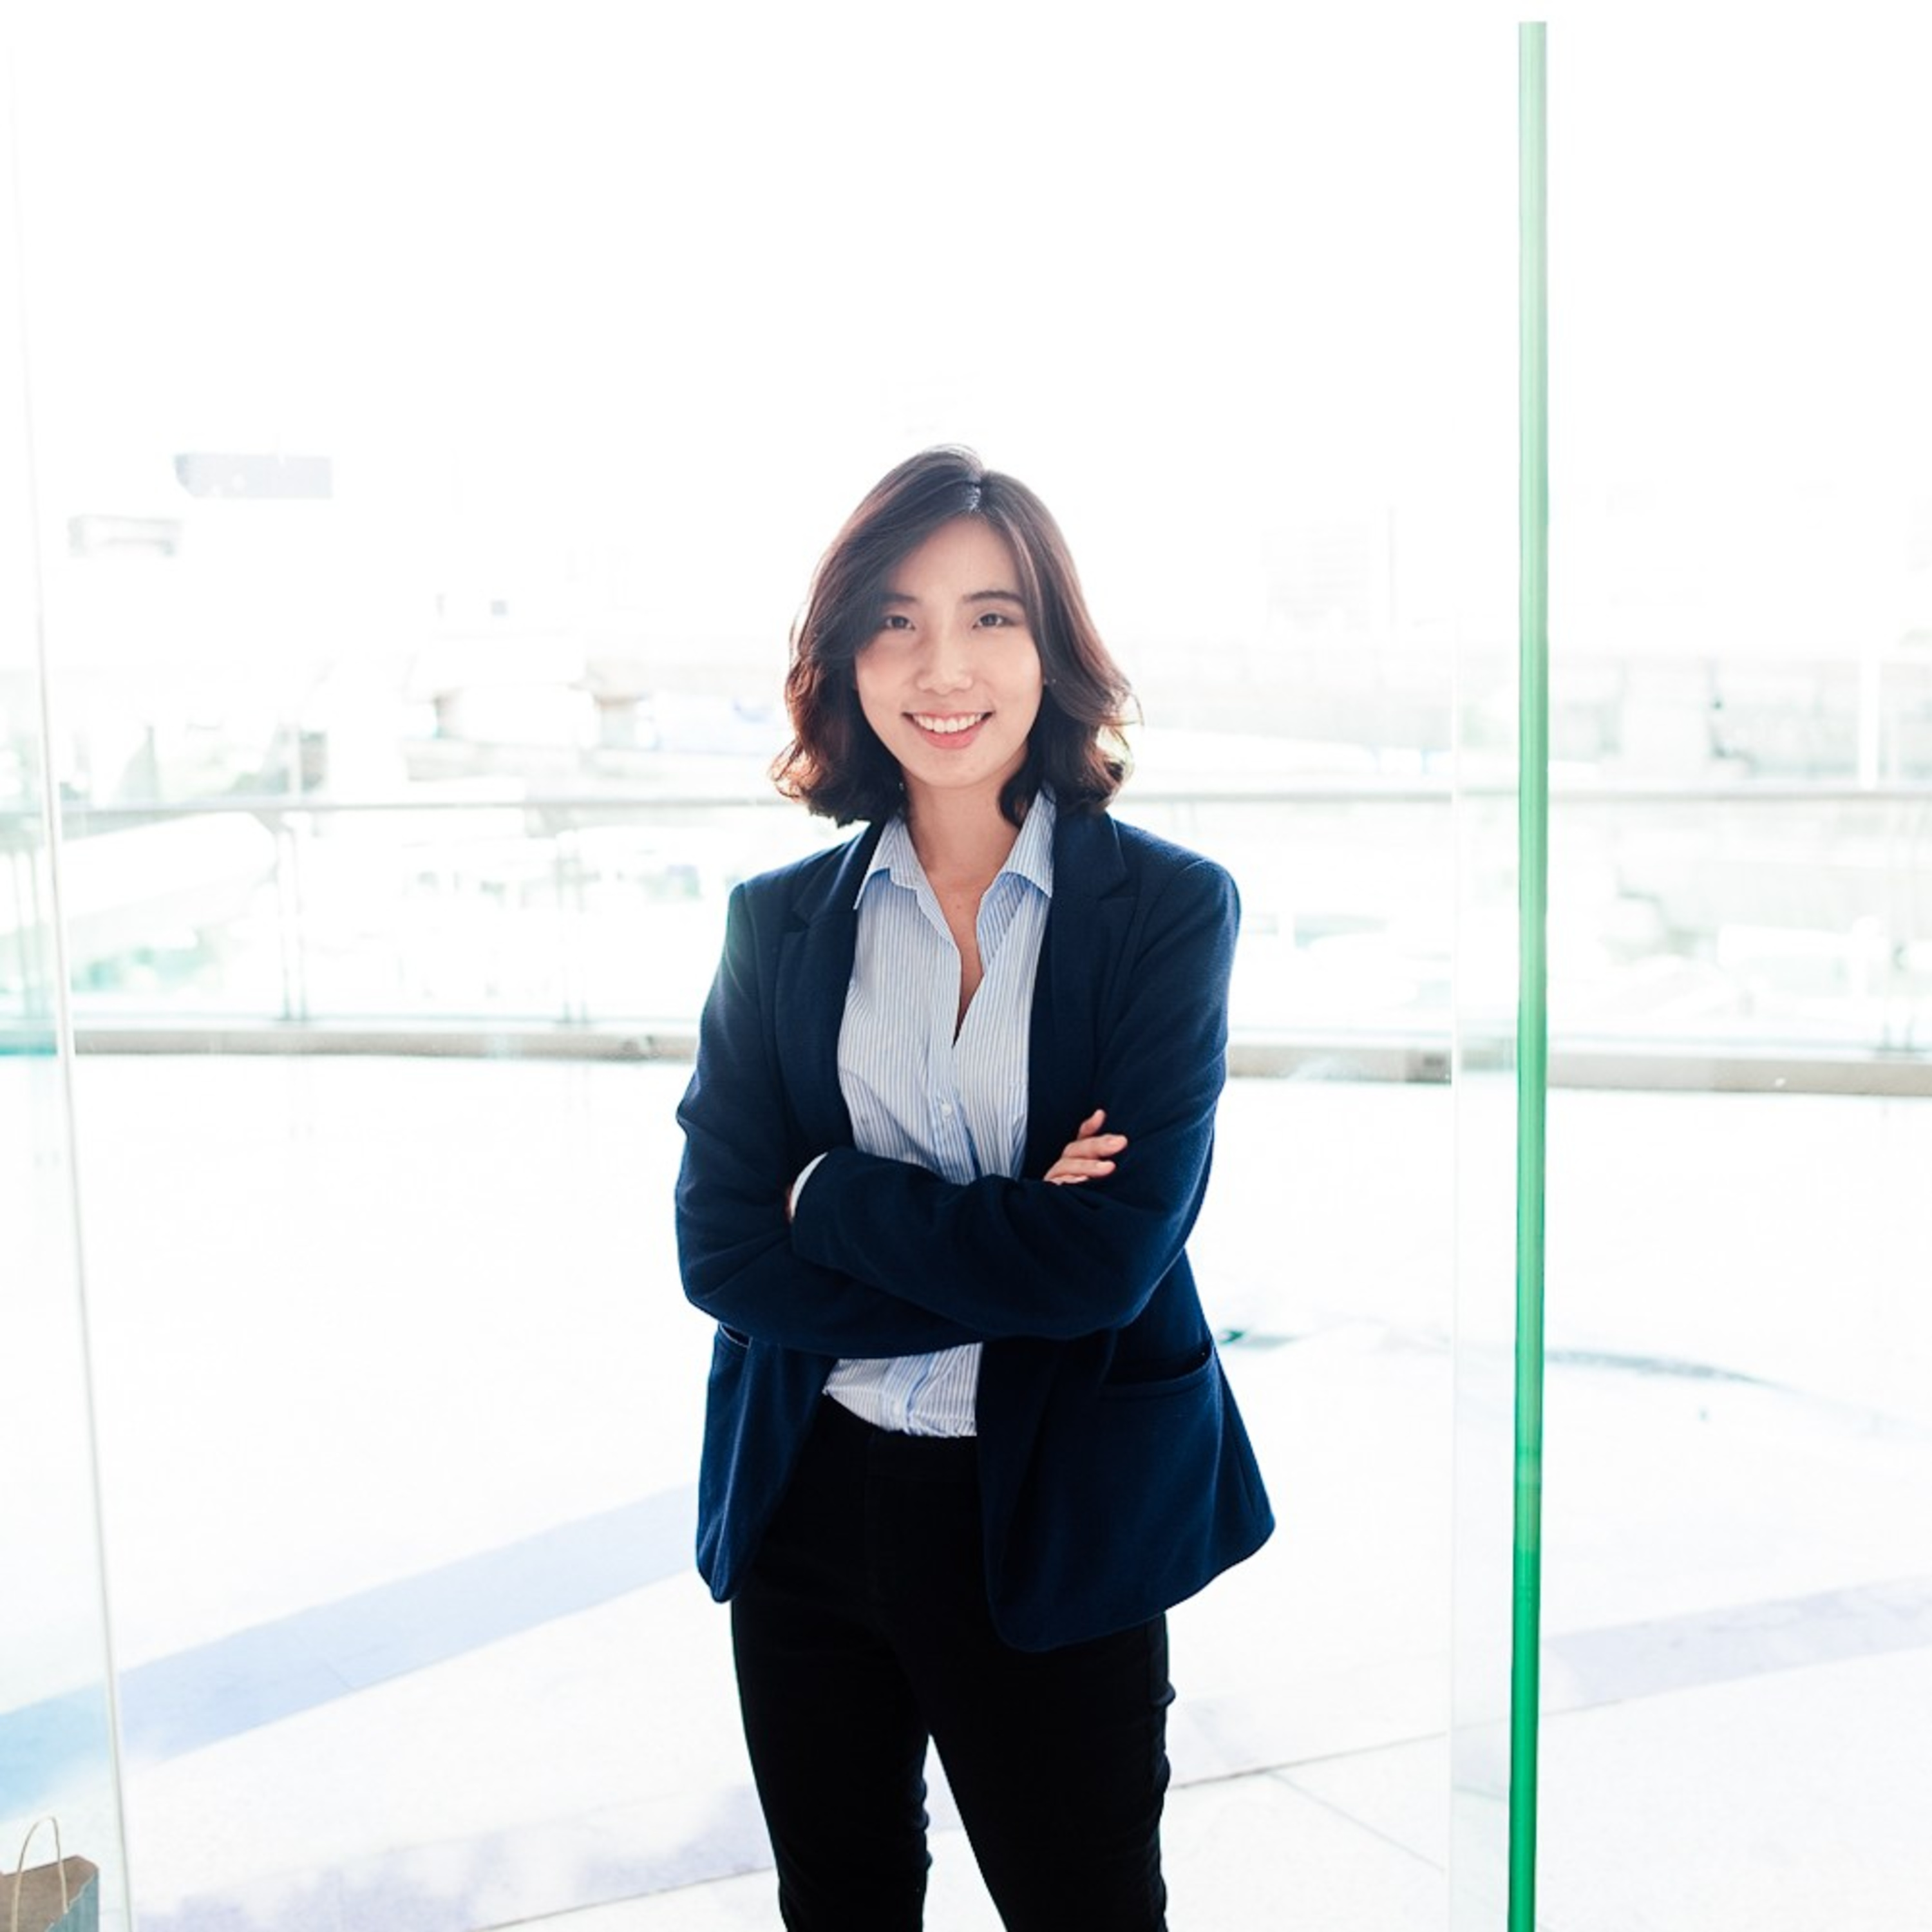 Ep 52: How To Leave A High Paying Job To Pursue Your Passion W/ Kanpassorn Suriyasangpetch